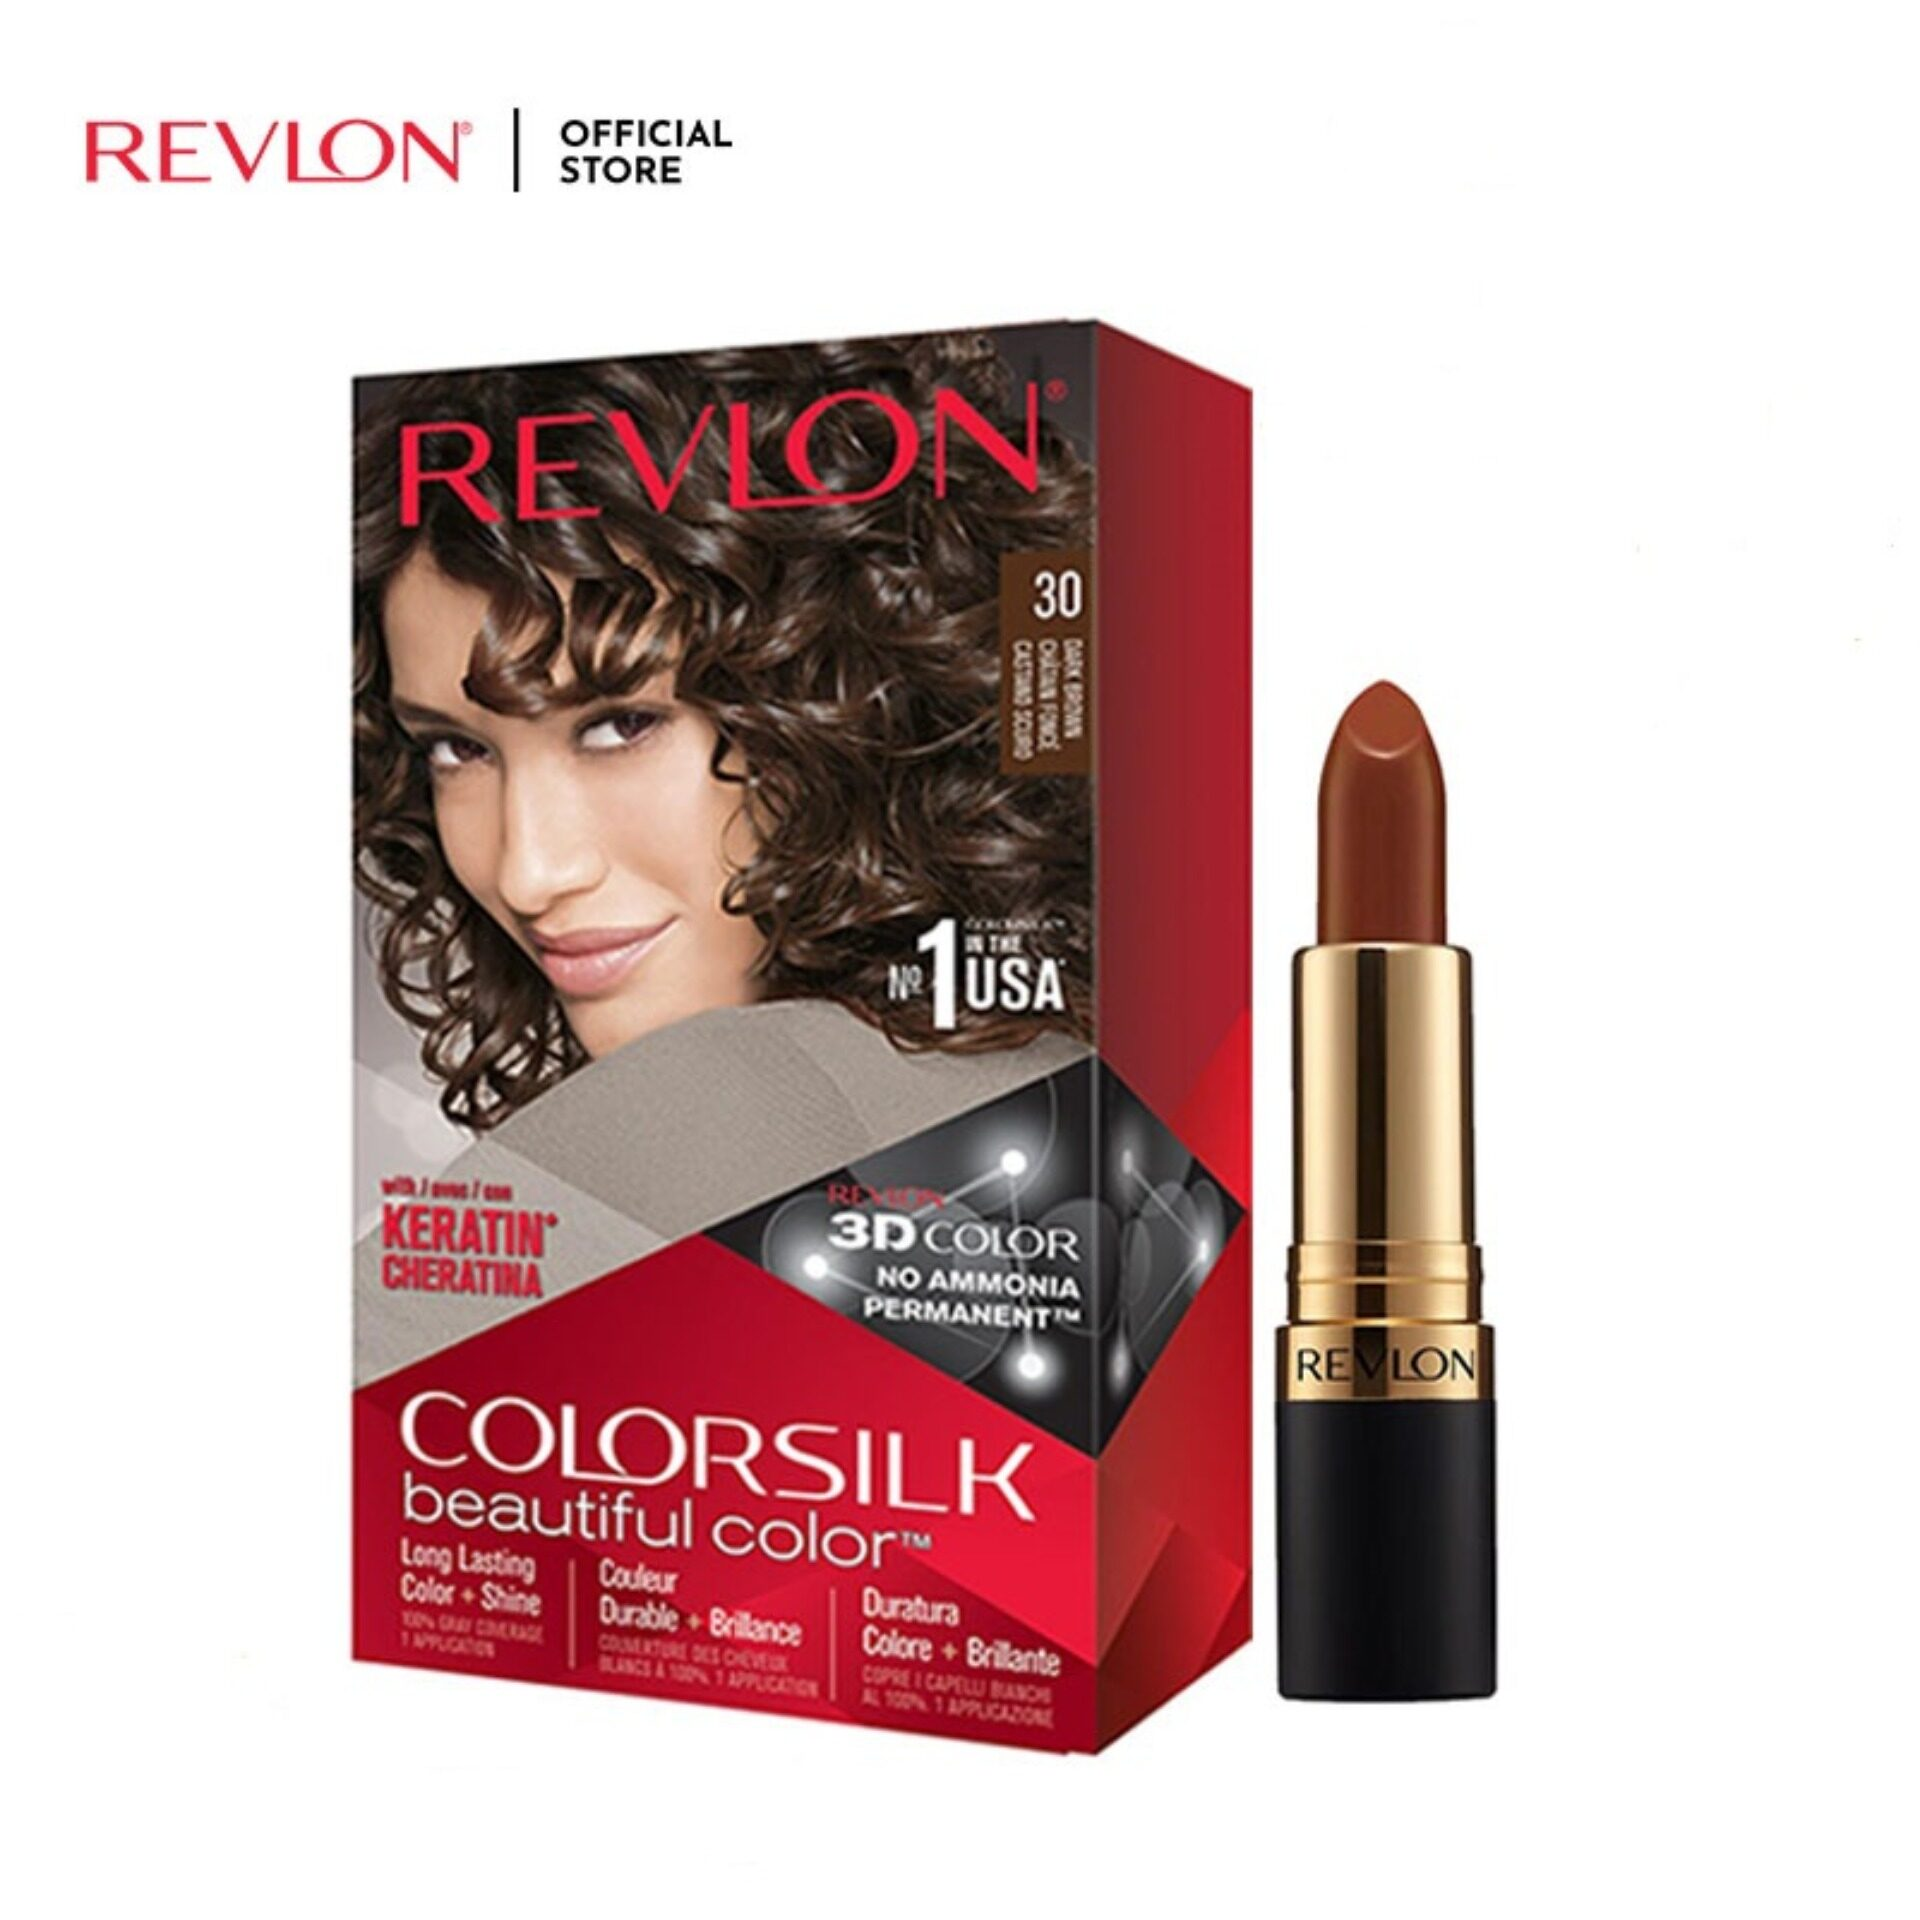 Revlon ColorSilk Dark Brown Hair Color FREE Super Lustrous Superstar Brown Lipstick